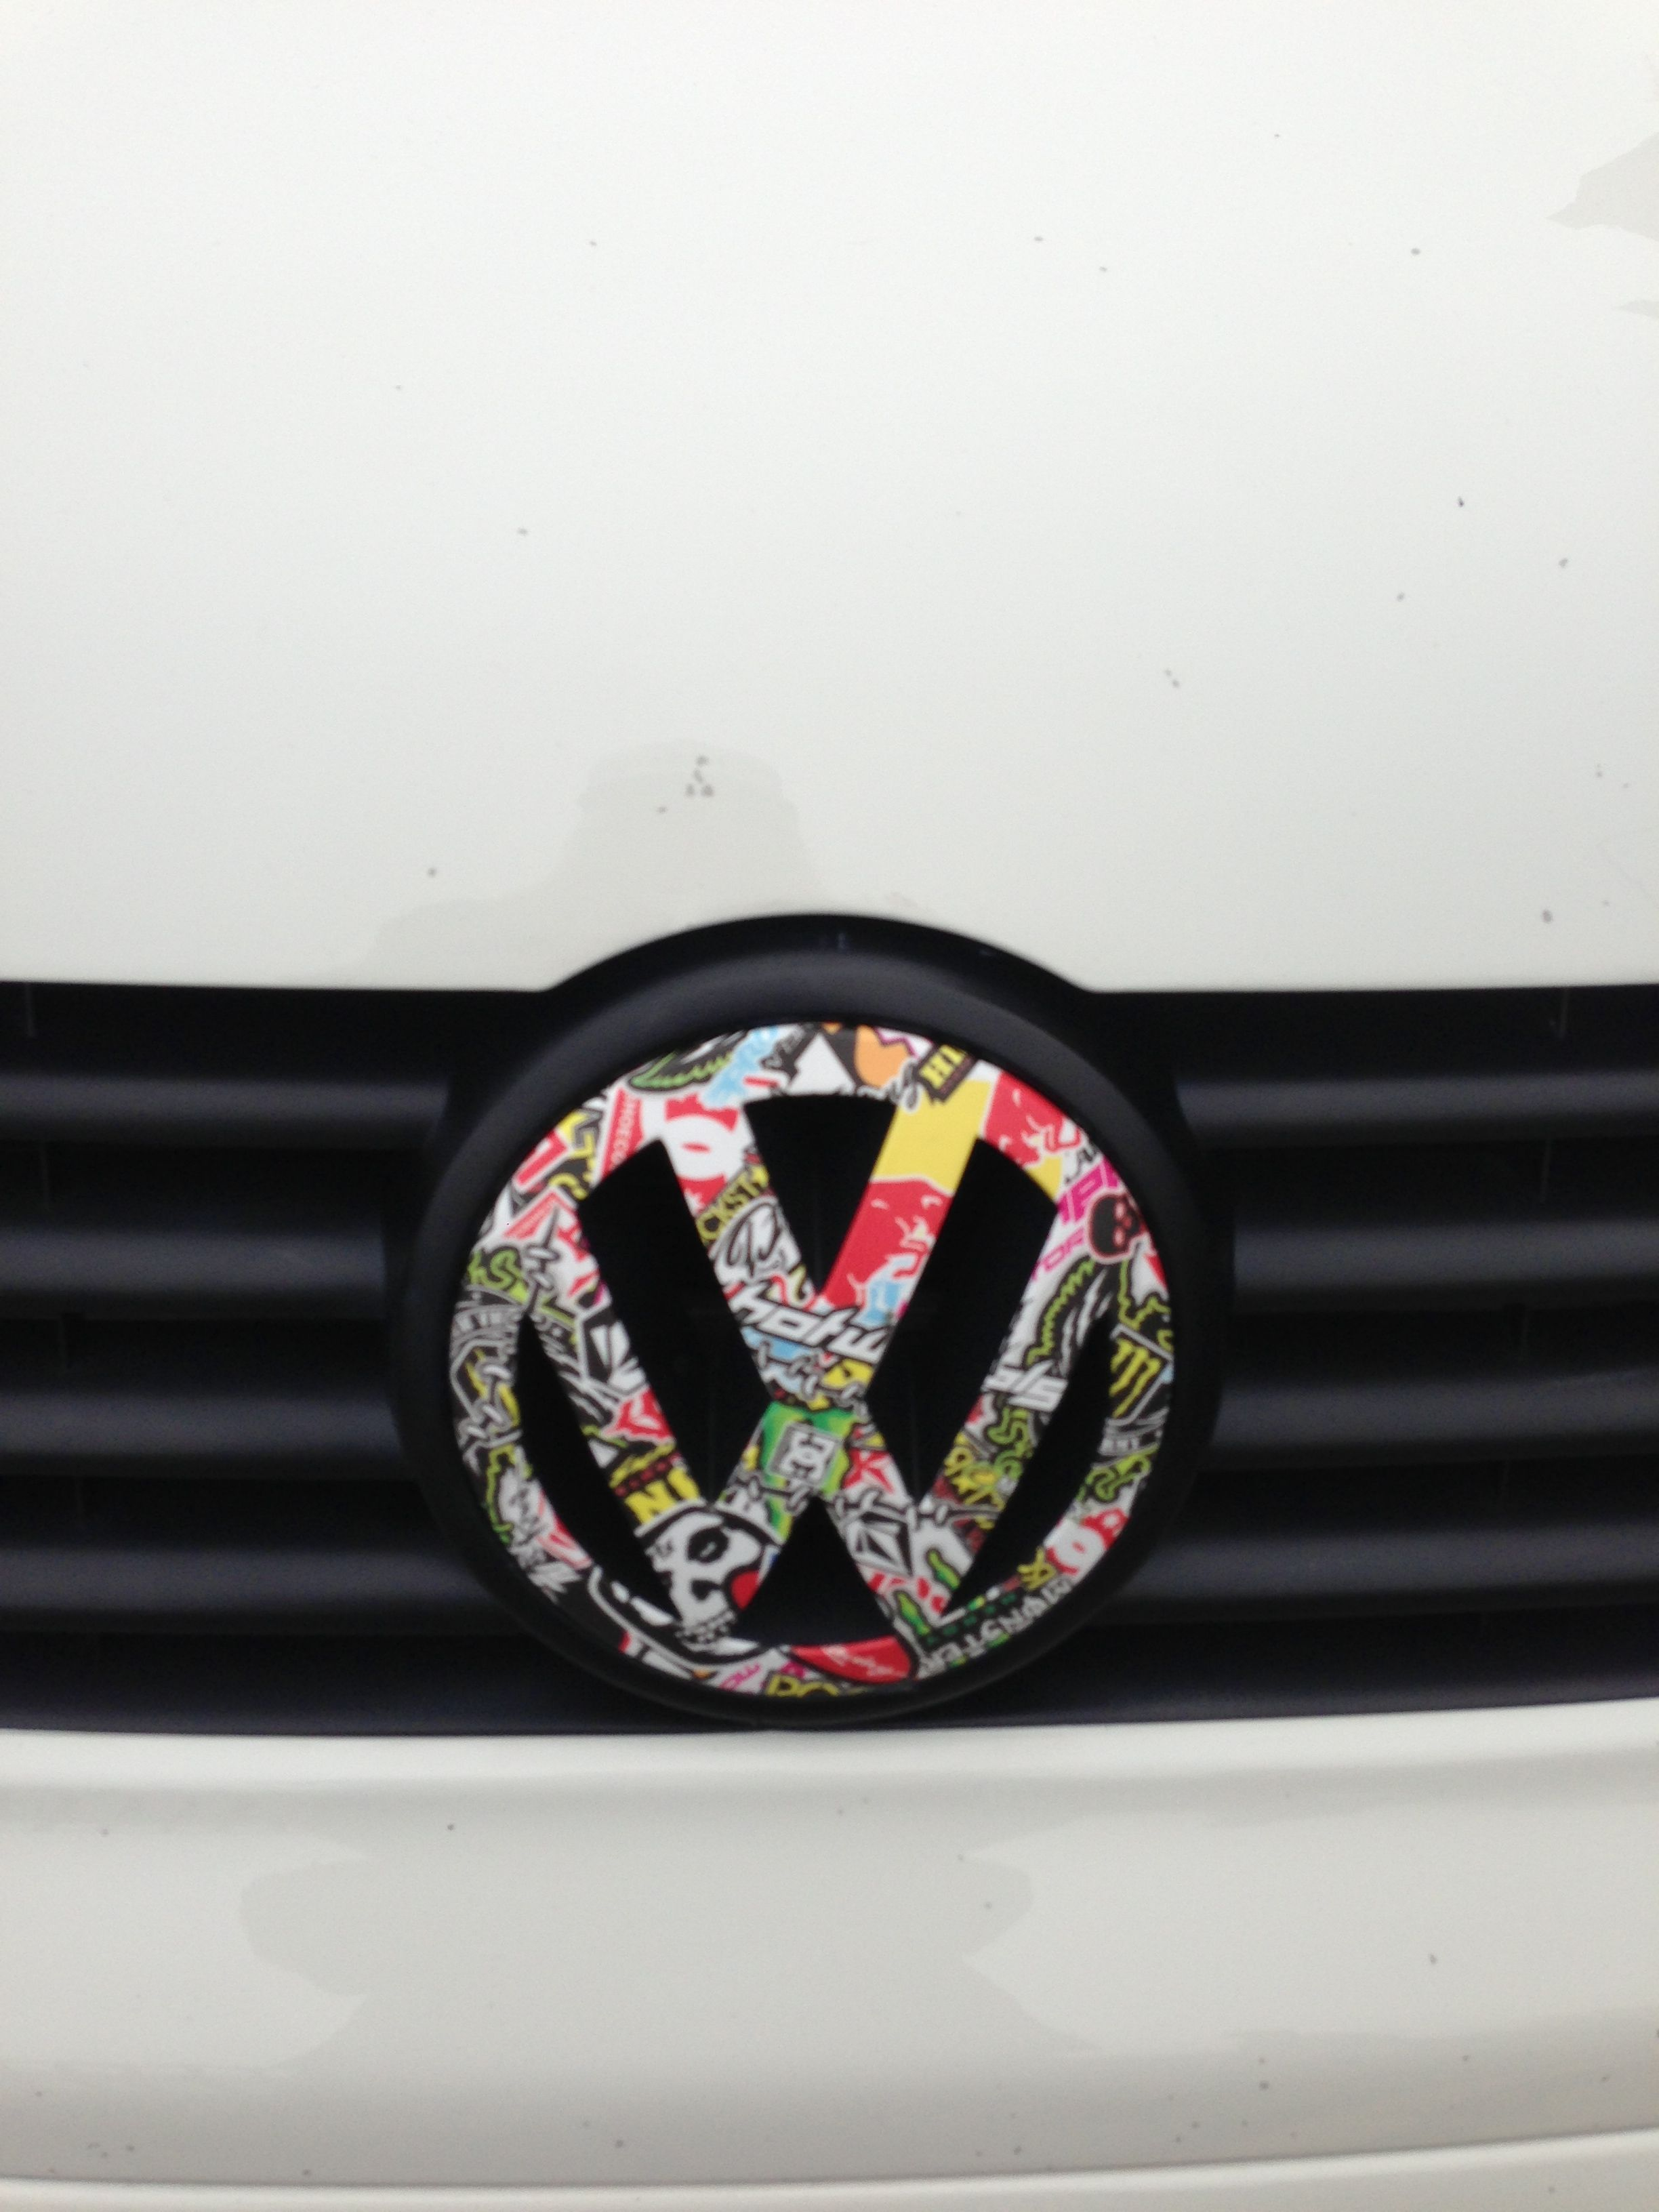 Sticker bomb gumball 3000 sticker bomb cool stickers super bikes vw camper